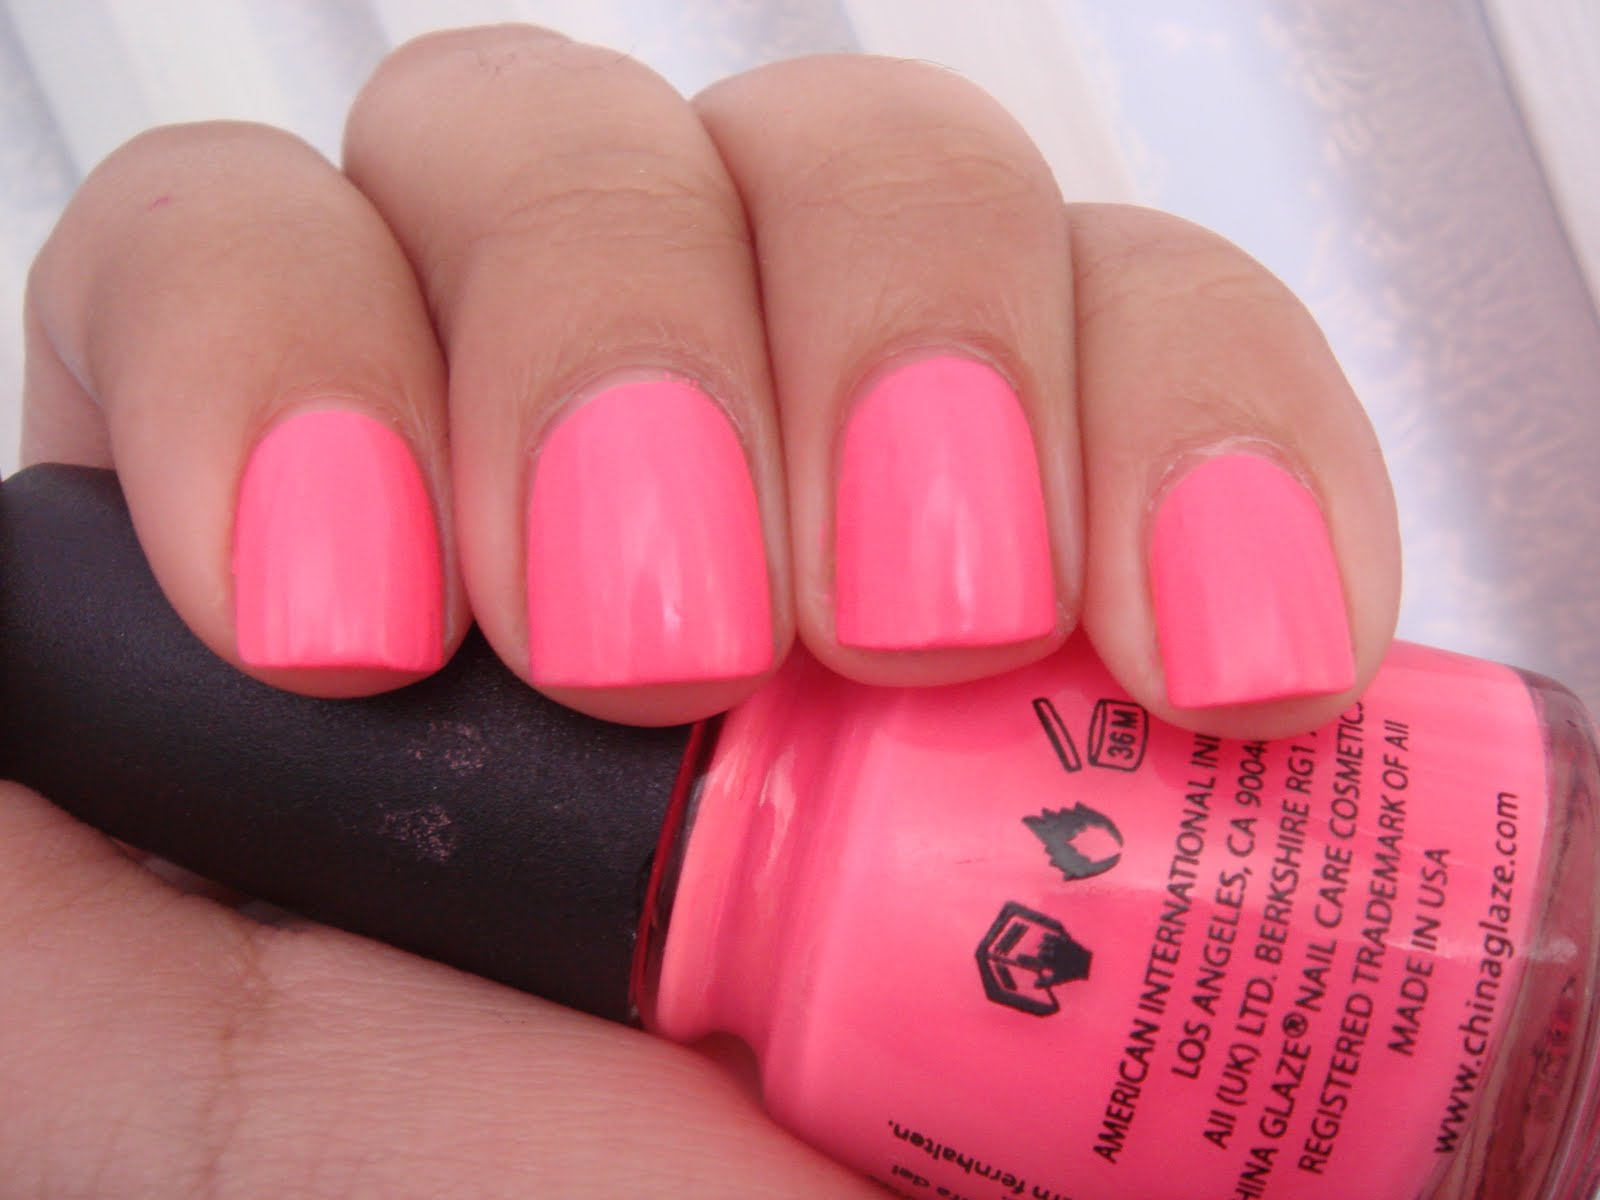 Nailed It: Spring Nail Colors | Her Campus